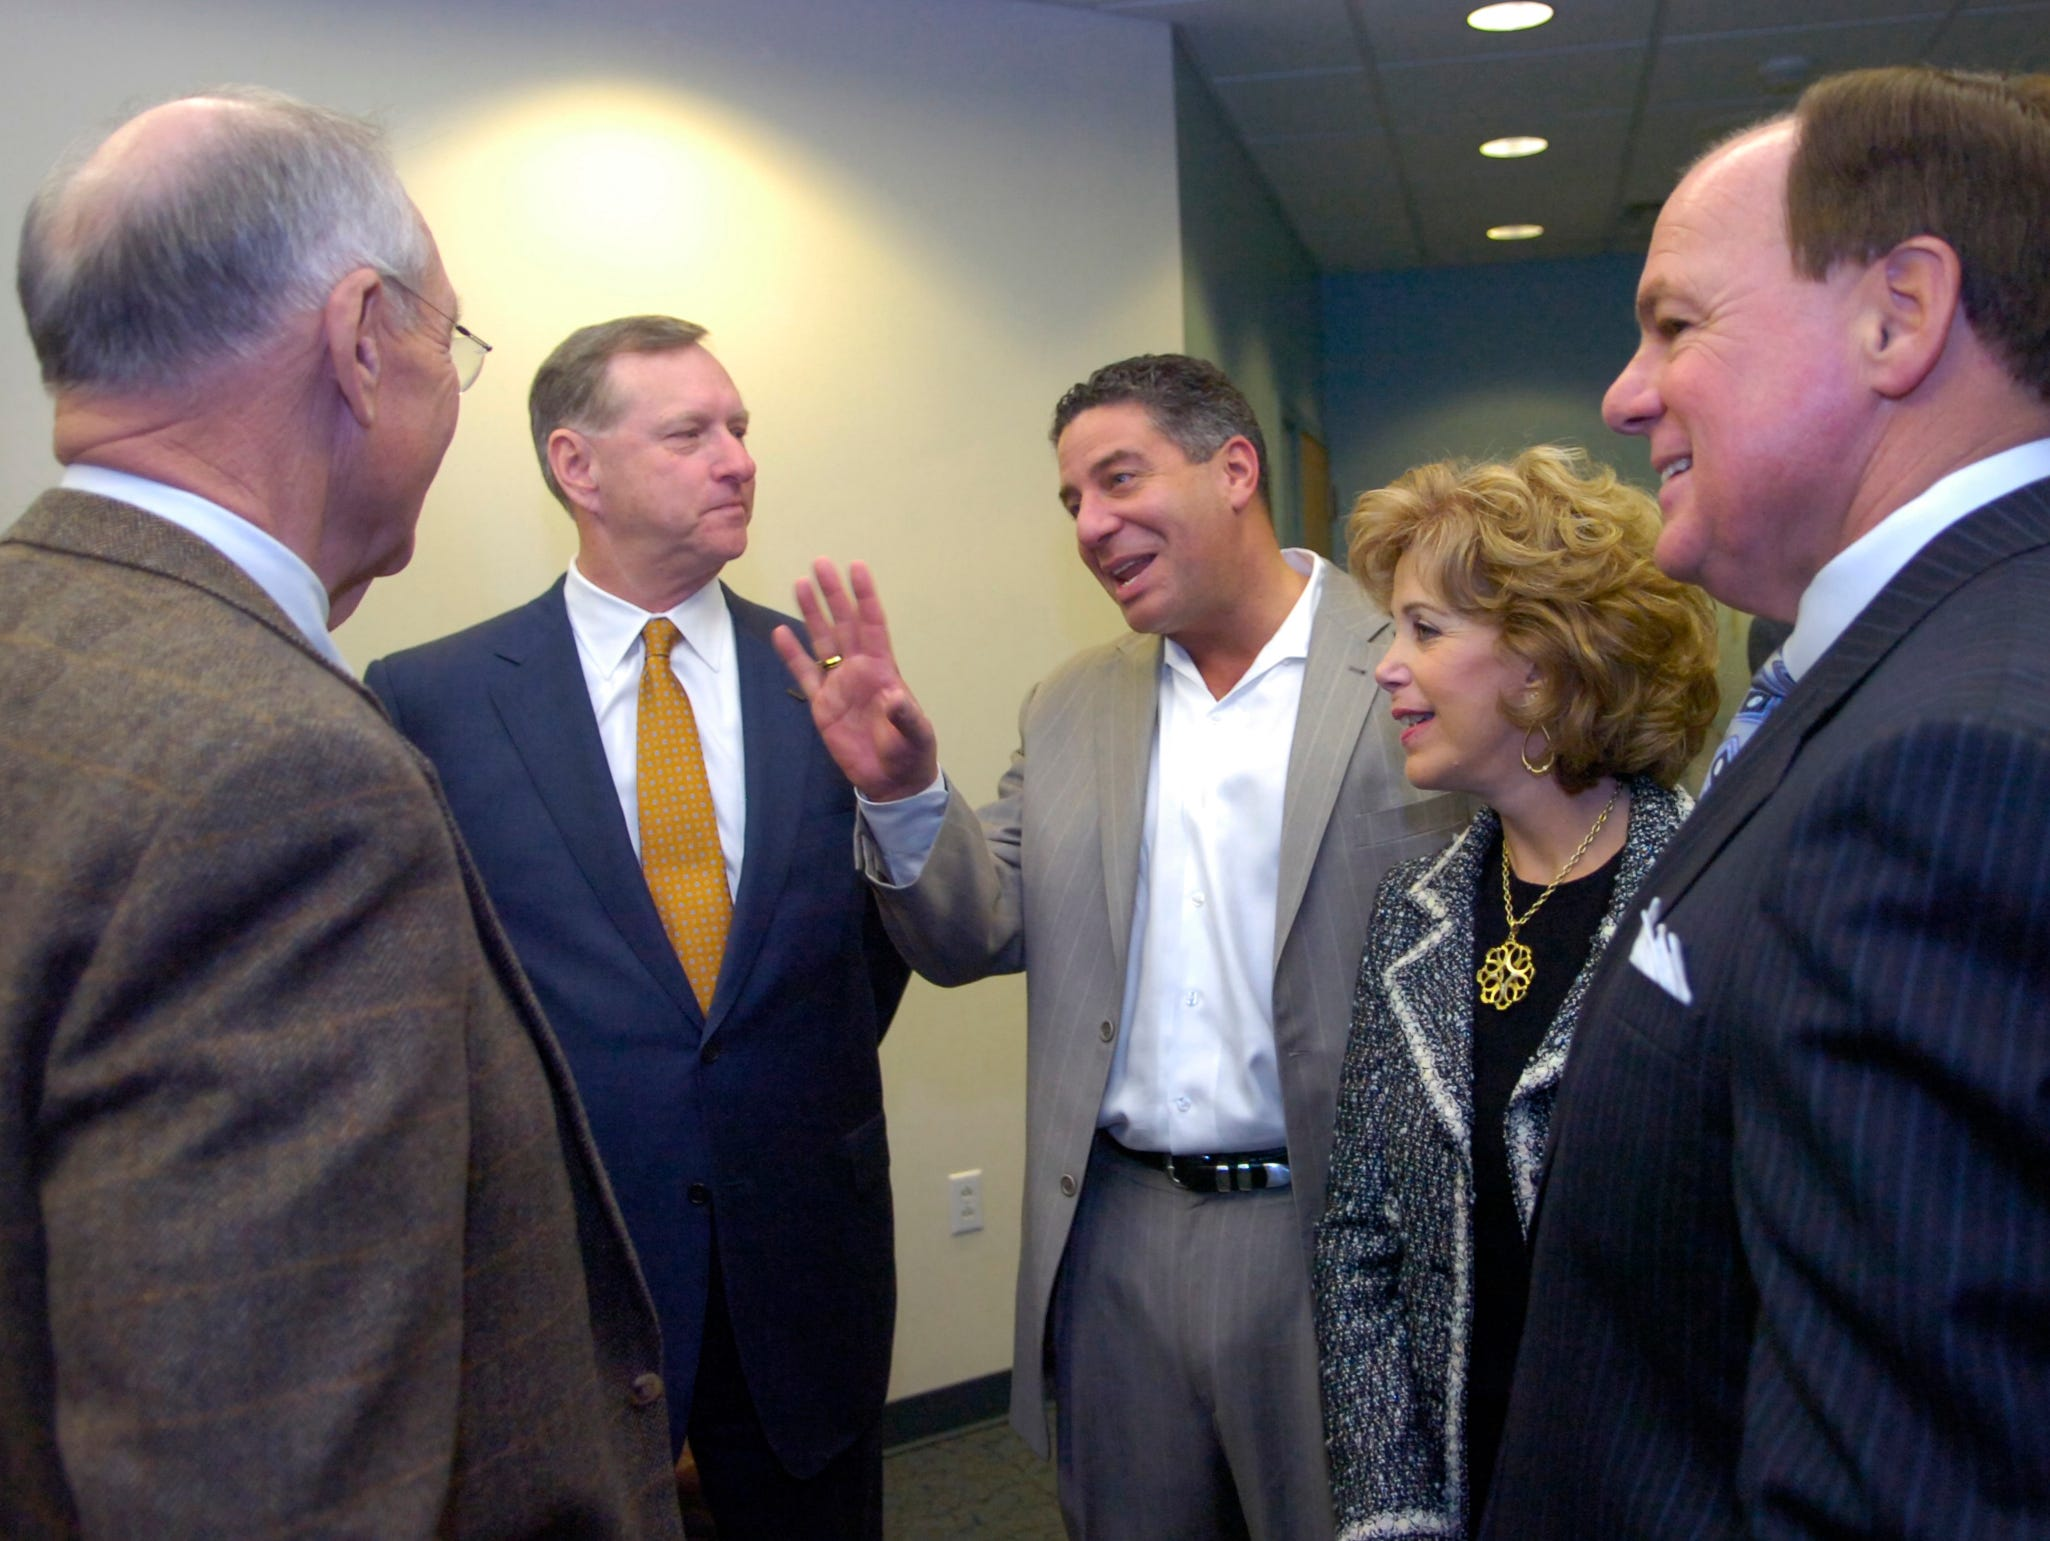 University of Tennessee men's basketball coach Bruce Pearl, center, chats with Jim Haslam of Pilot Corp., left, Scott Niswonger, founder of Landair Transport, Inc., and Forward Air Transport, Inc., and Wendy and Bob Goodfriend of Goody's Family Clothing, Inc., before a capital funds campaign announcement Tuesday at East Tennessee Children's Hospital. The hospital received pledges totaling $5 million. The funds will primarily go toward the hospital's recently completed $31.8 million construction/renovation project and increasing the hospital's endowment. 3/21/06